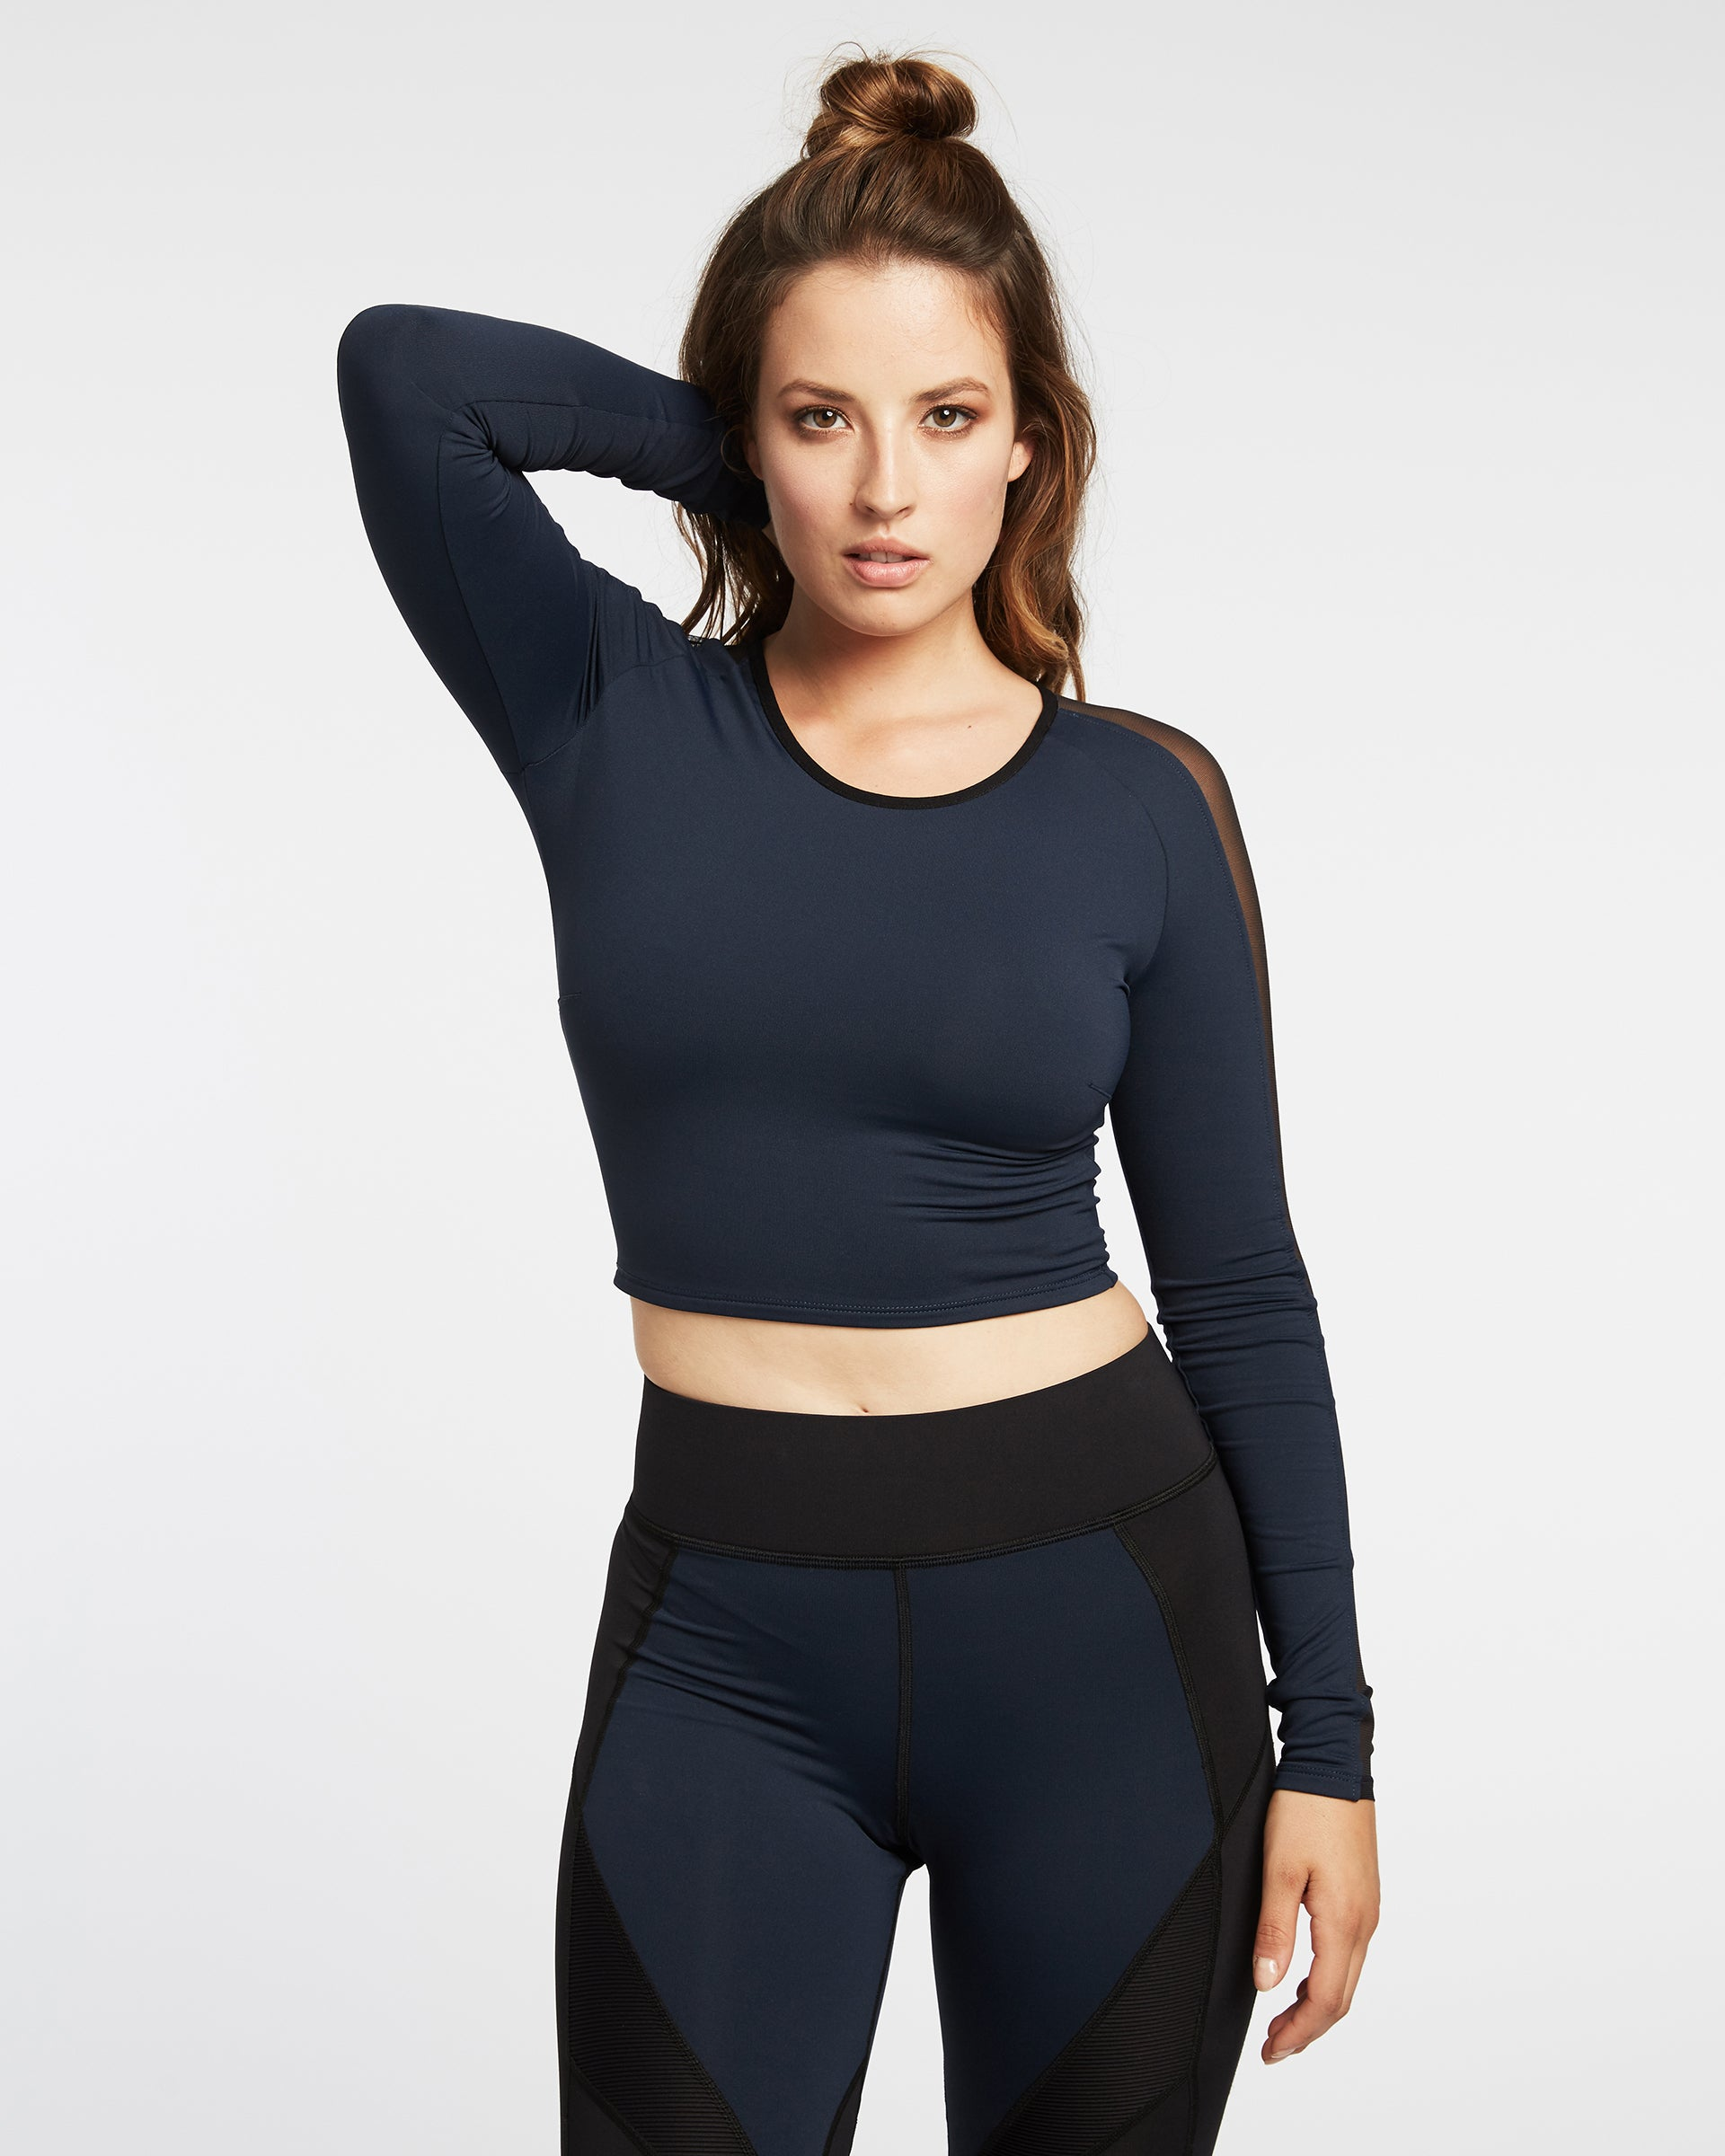 bolt-crop-top-deep-sea-navy